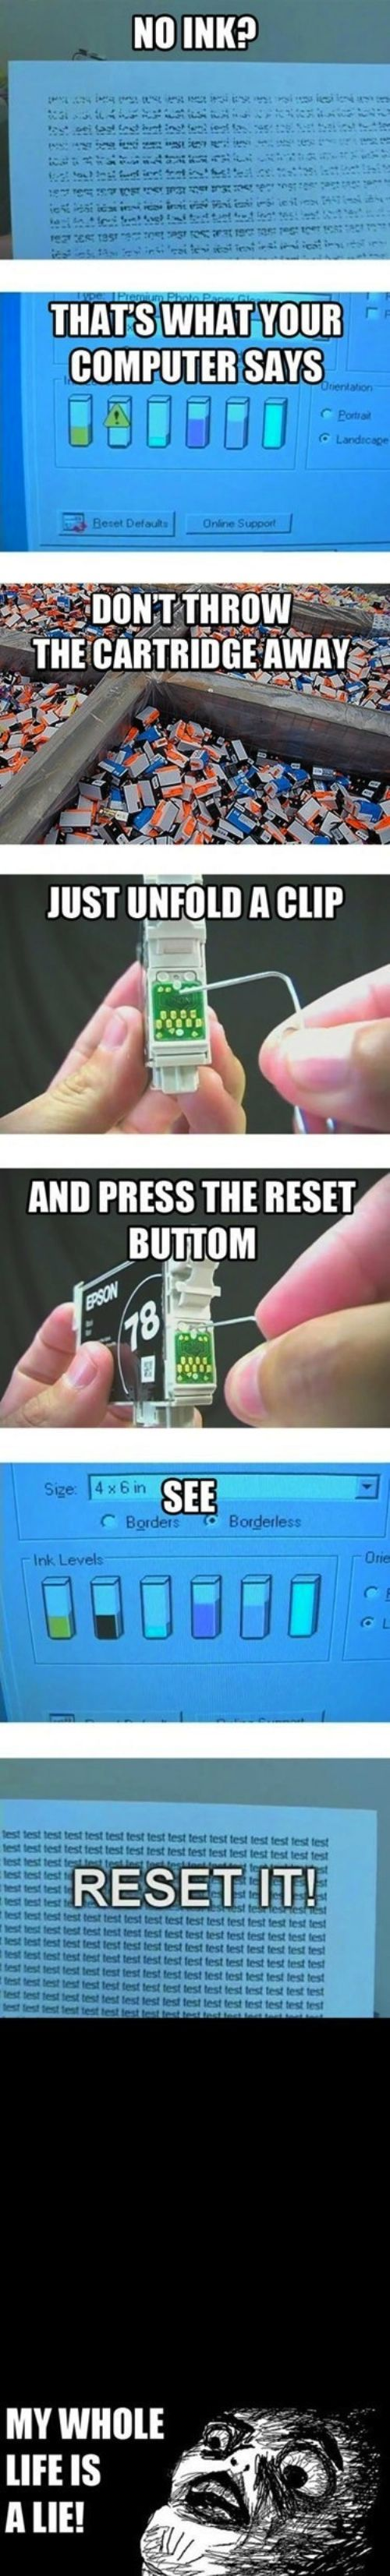 Think you have no ink left? Think again.: Reset Ink Cartridges, Ideas, It Work, Random, Lifehacks, Interesting, Life Hacks, Diy, Printer Ink